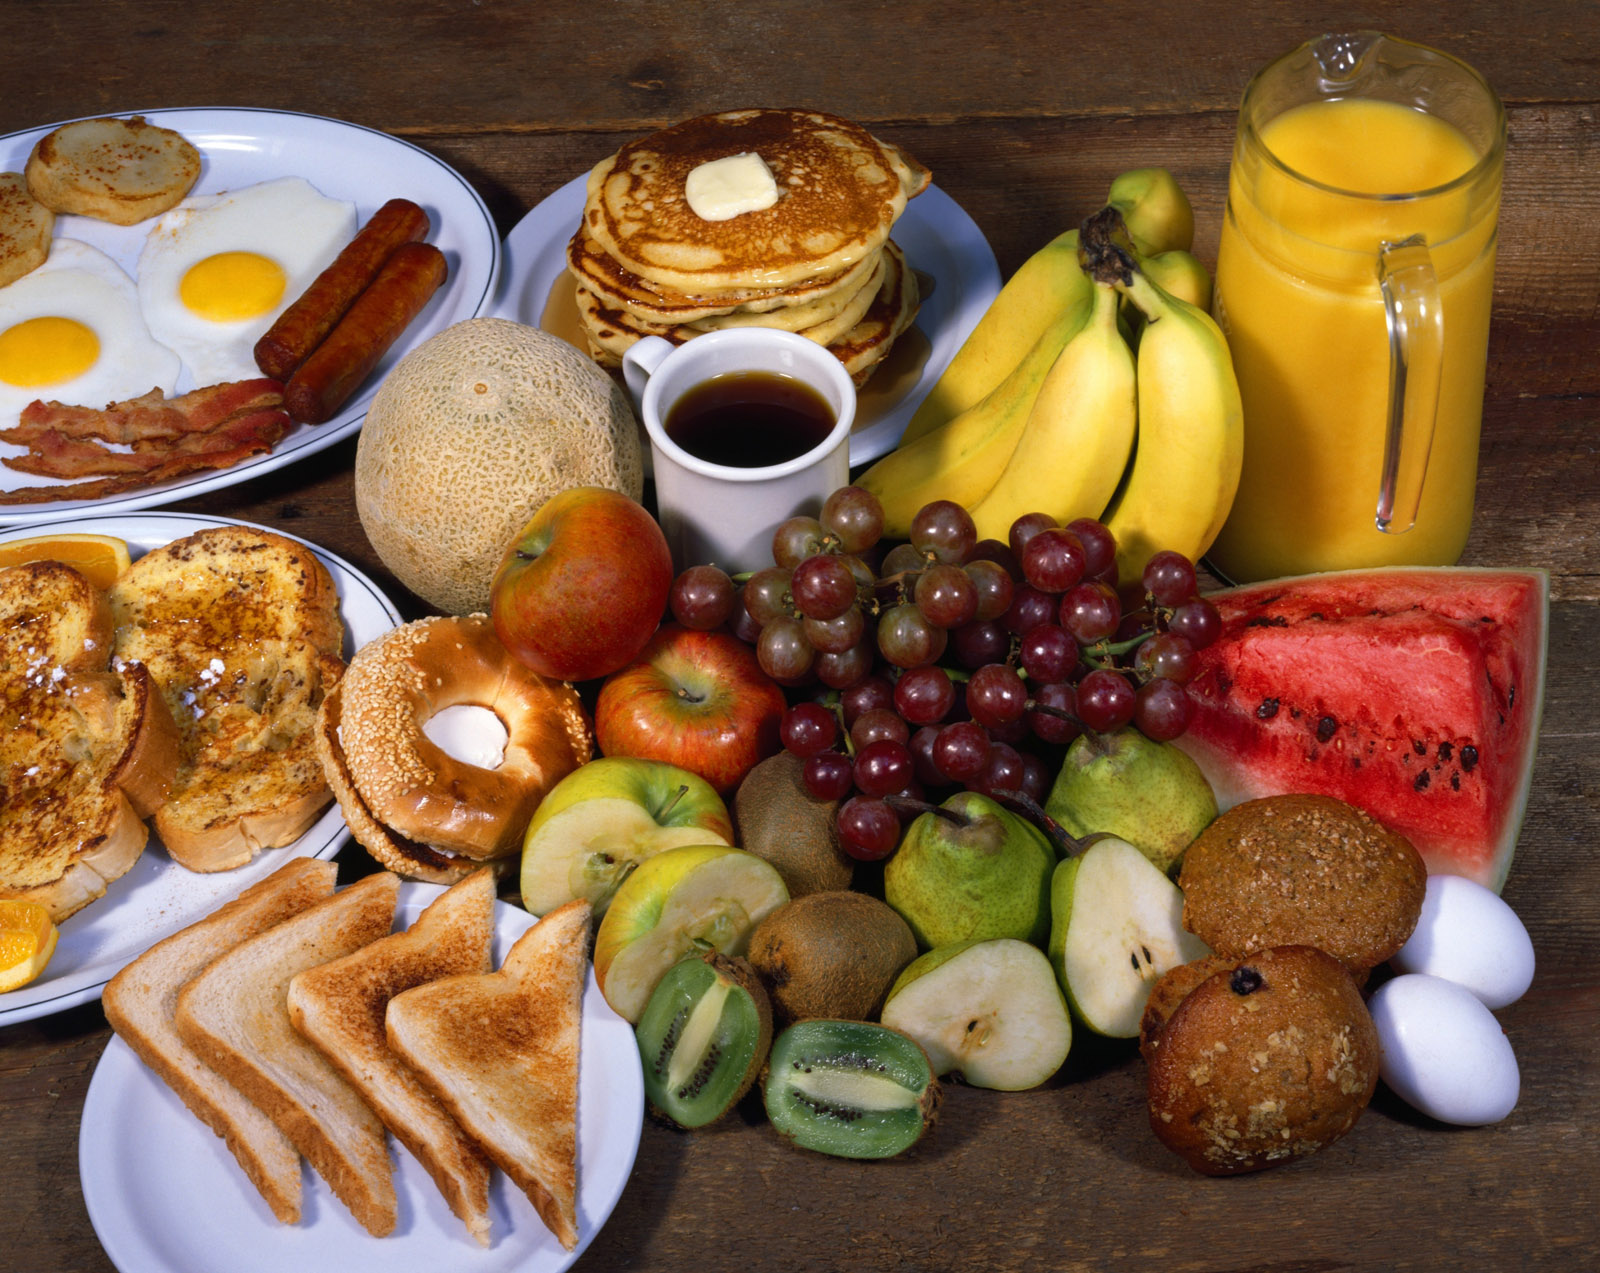 What's for breakfast? It's complicated